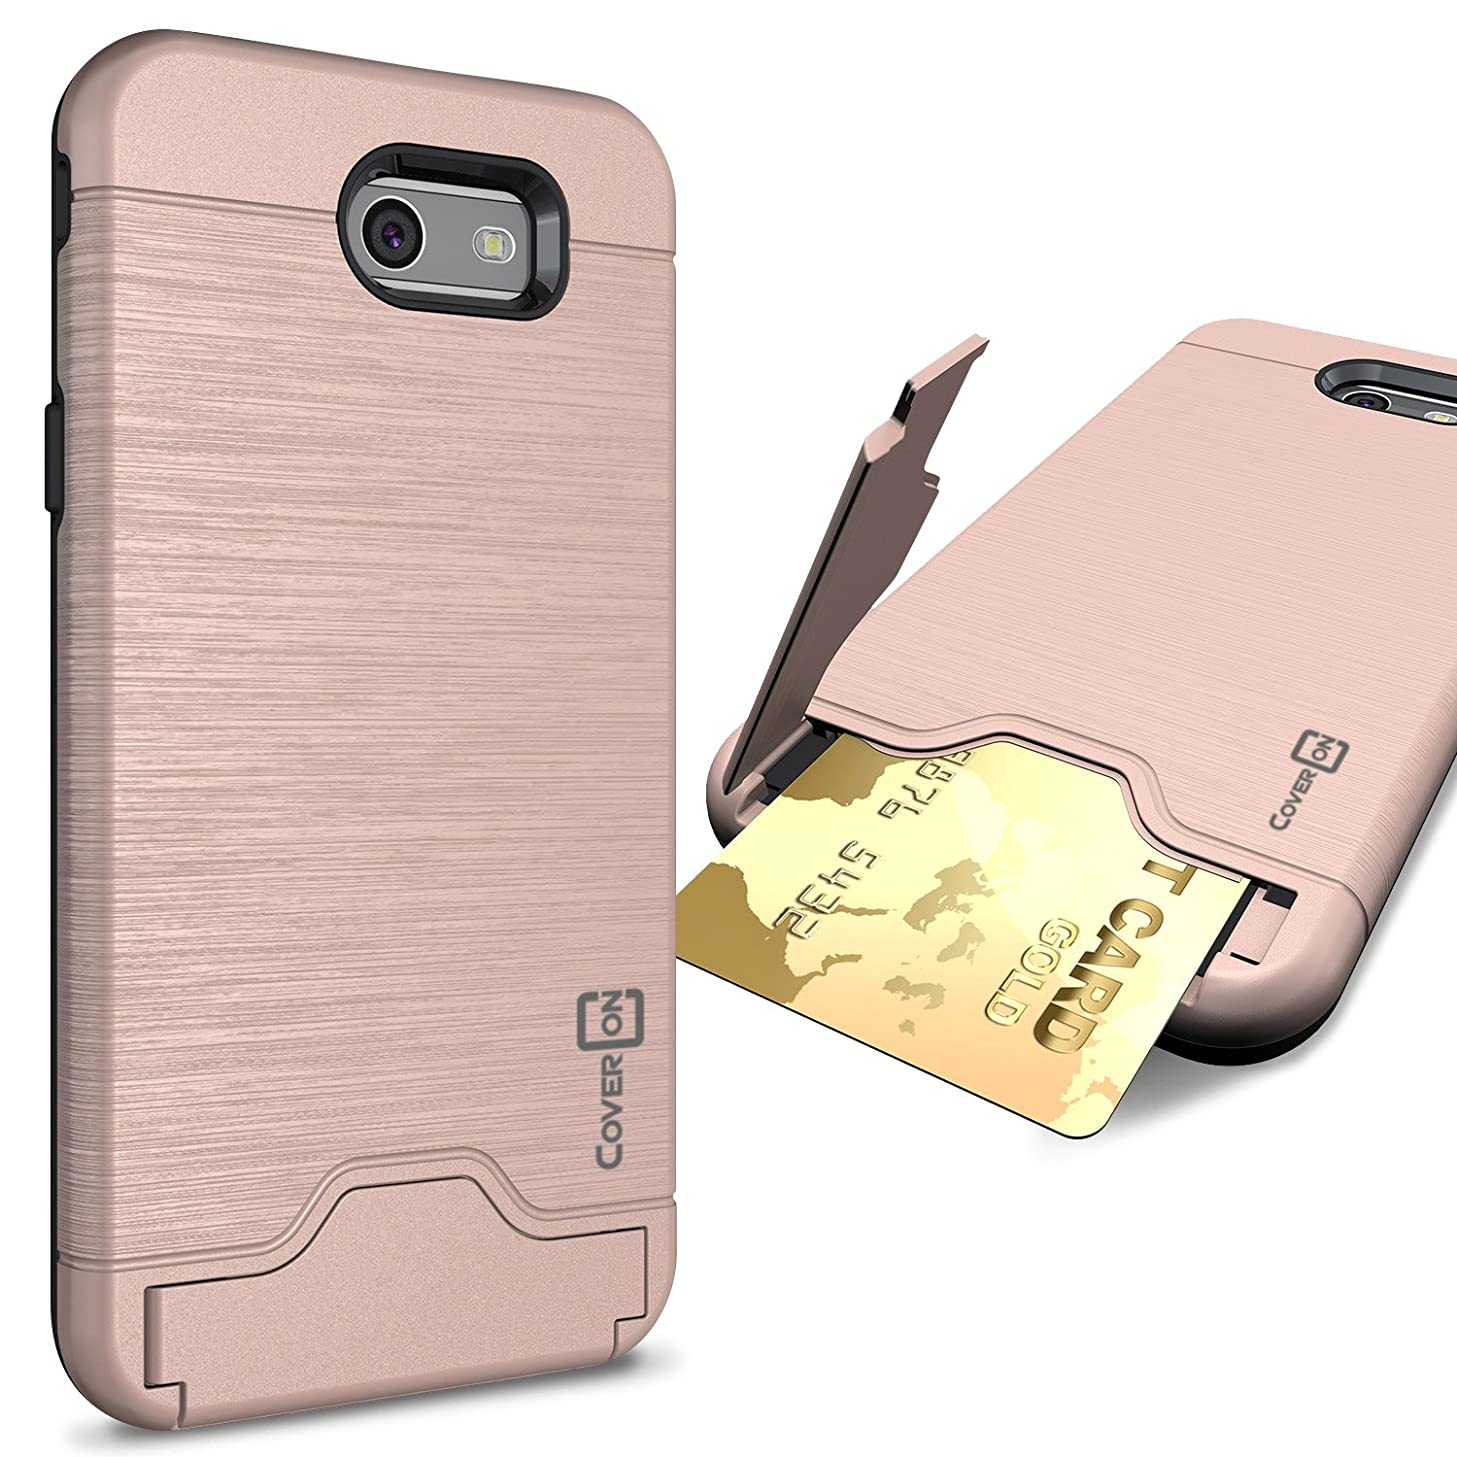 Galaxy J7 Prime Case, Galaxy J7 Sky Pro Case, Galaxy Halo Case, CoverON [SecureCard Series] Slim Hard Cover with Card Slot and Kickstand for Samsung Galaxy J7 Prime / J7 Sky Pro/Halo - Rose Gold